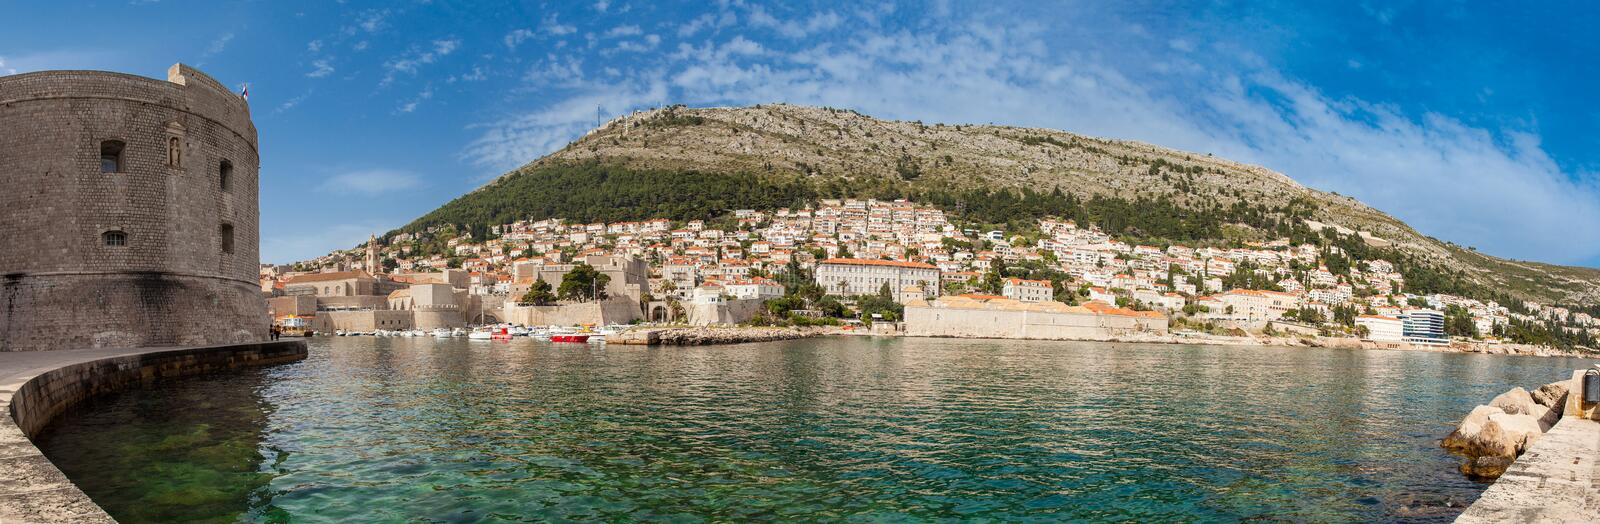 Mediterranean panorama of Dubrovnik old city including the old port, city walls and fortifications. Mediterranean panorama of the beautiful Dubrovnik old city stock photos